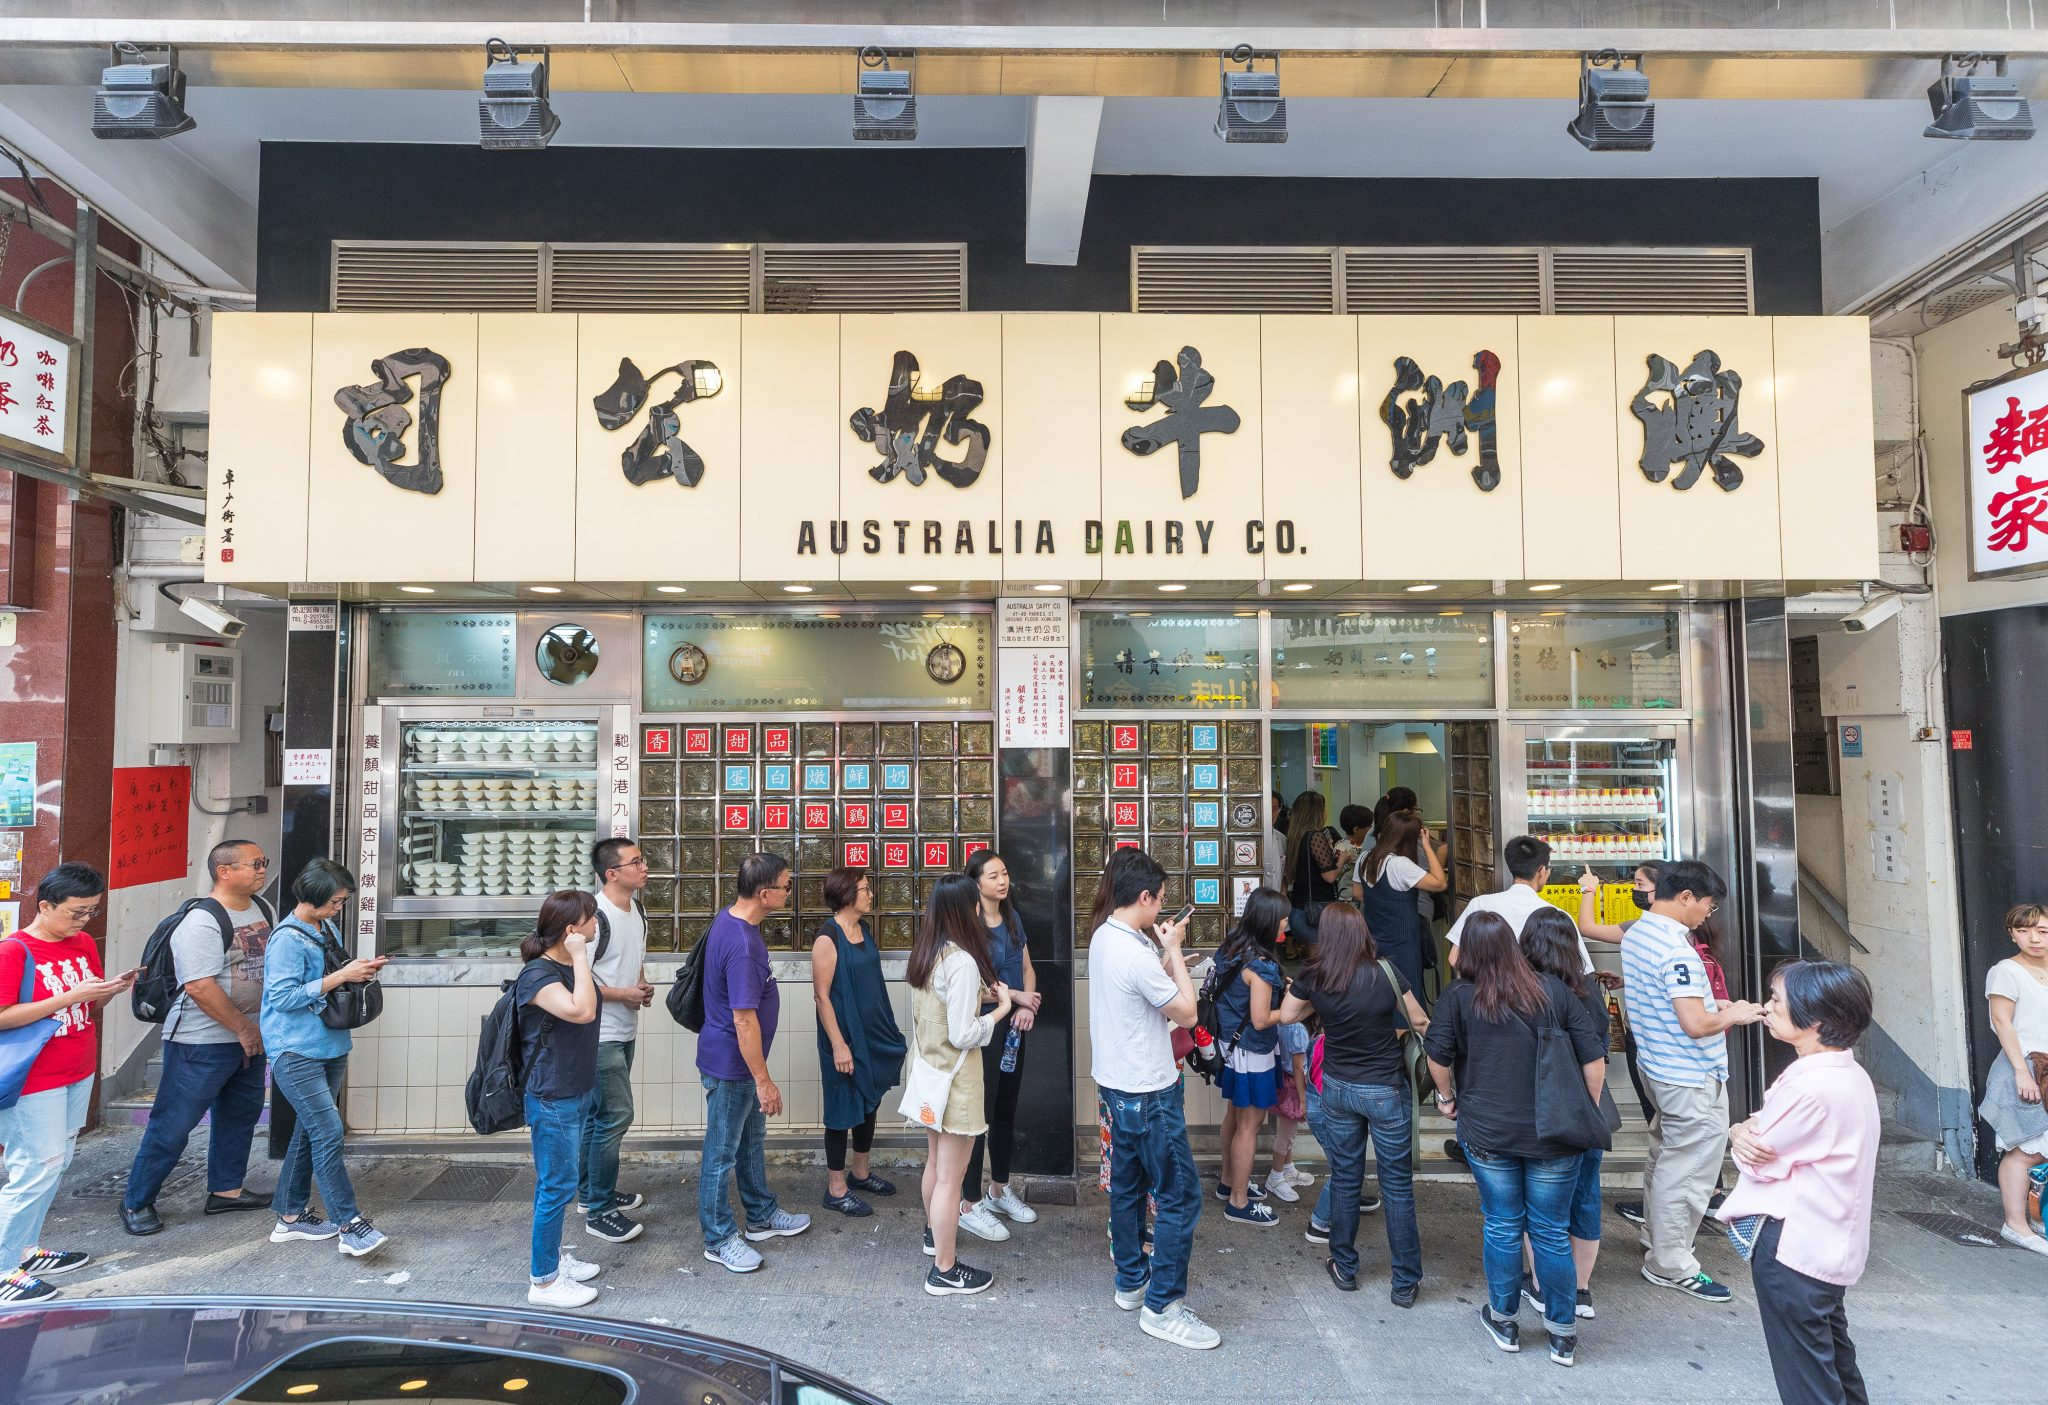 Definitely worth the visit: Australia Dairy Company in Hong Kong. Photo by Stan Lee